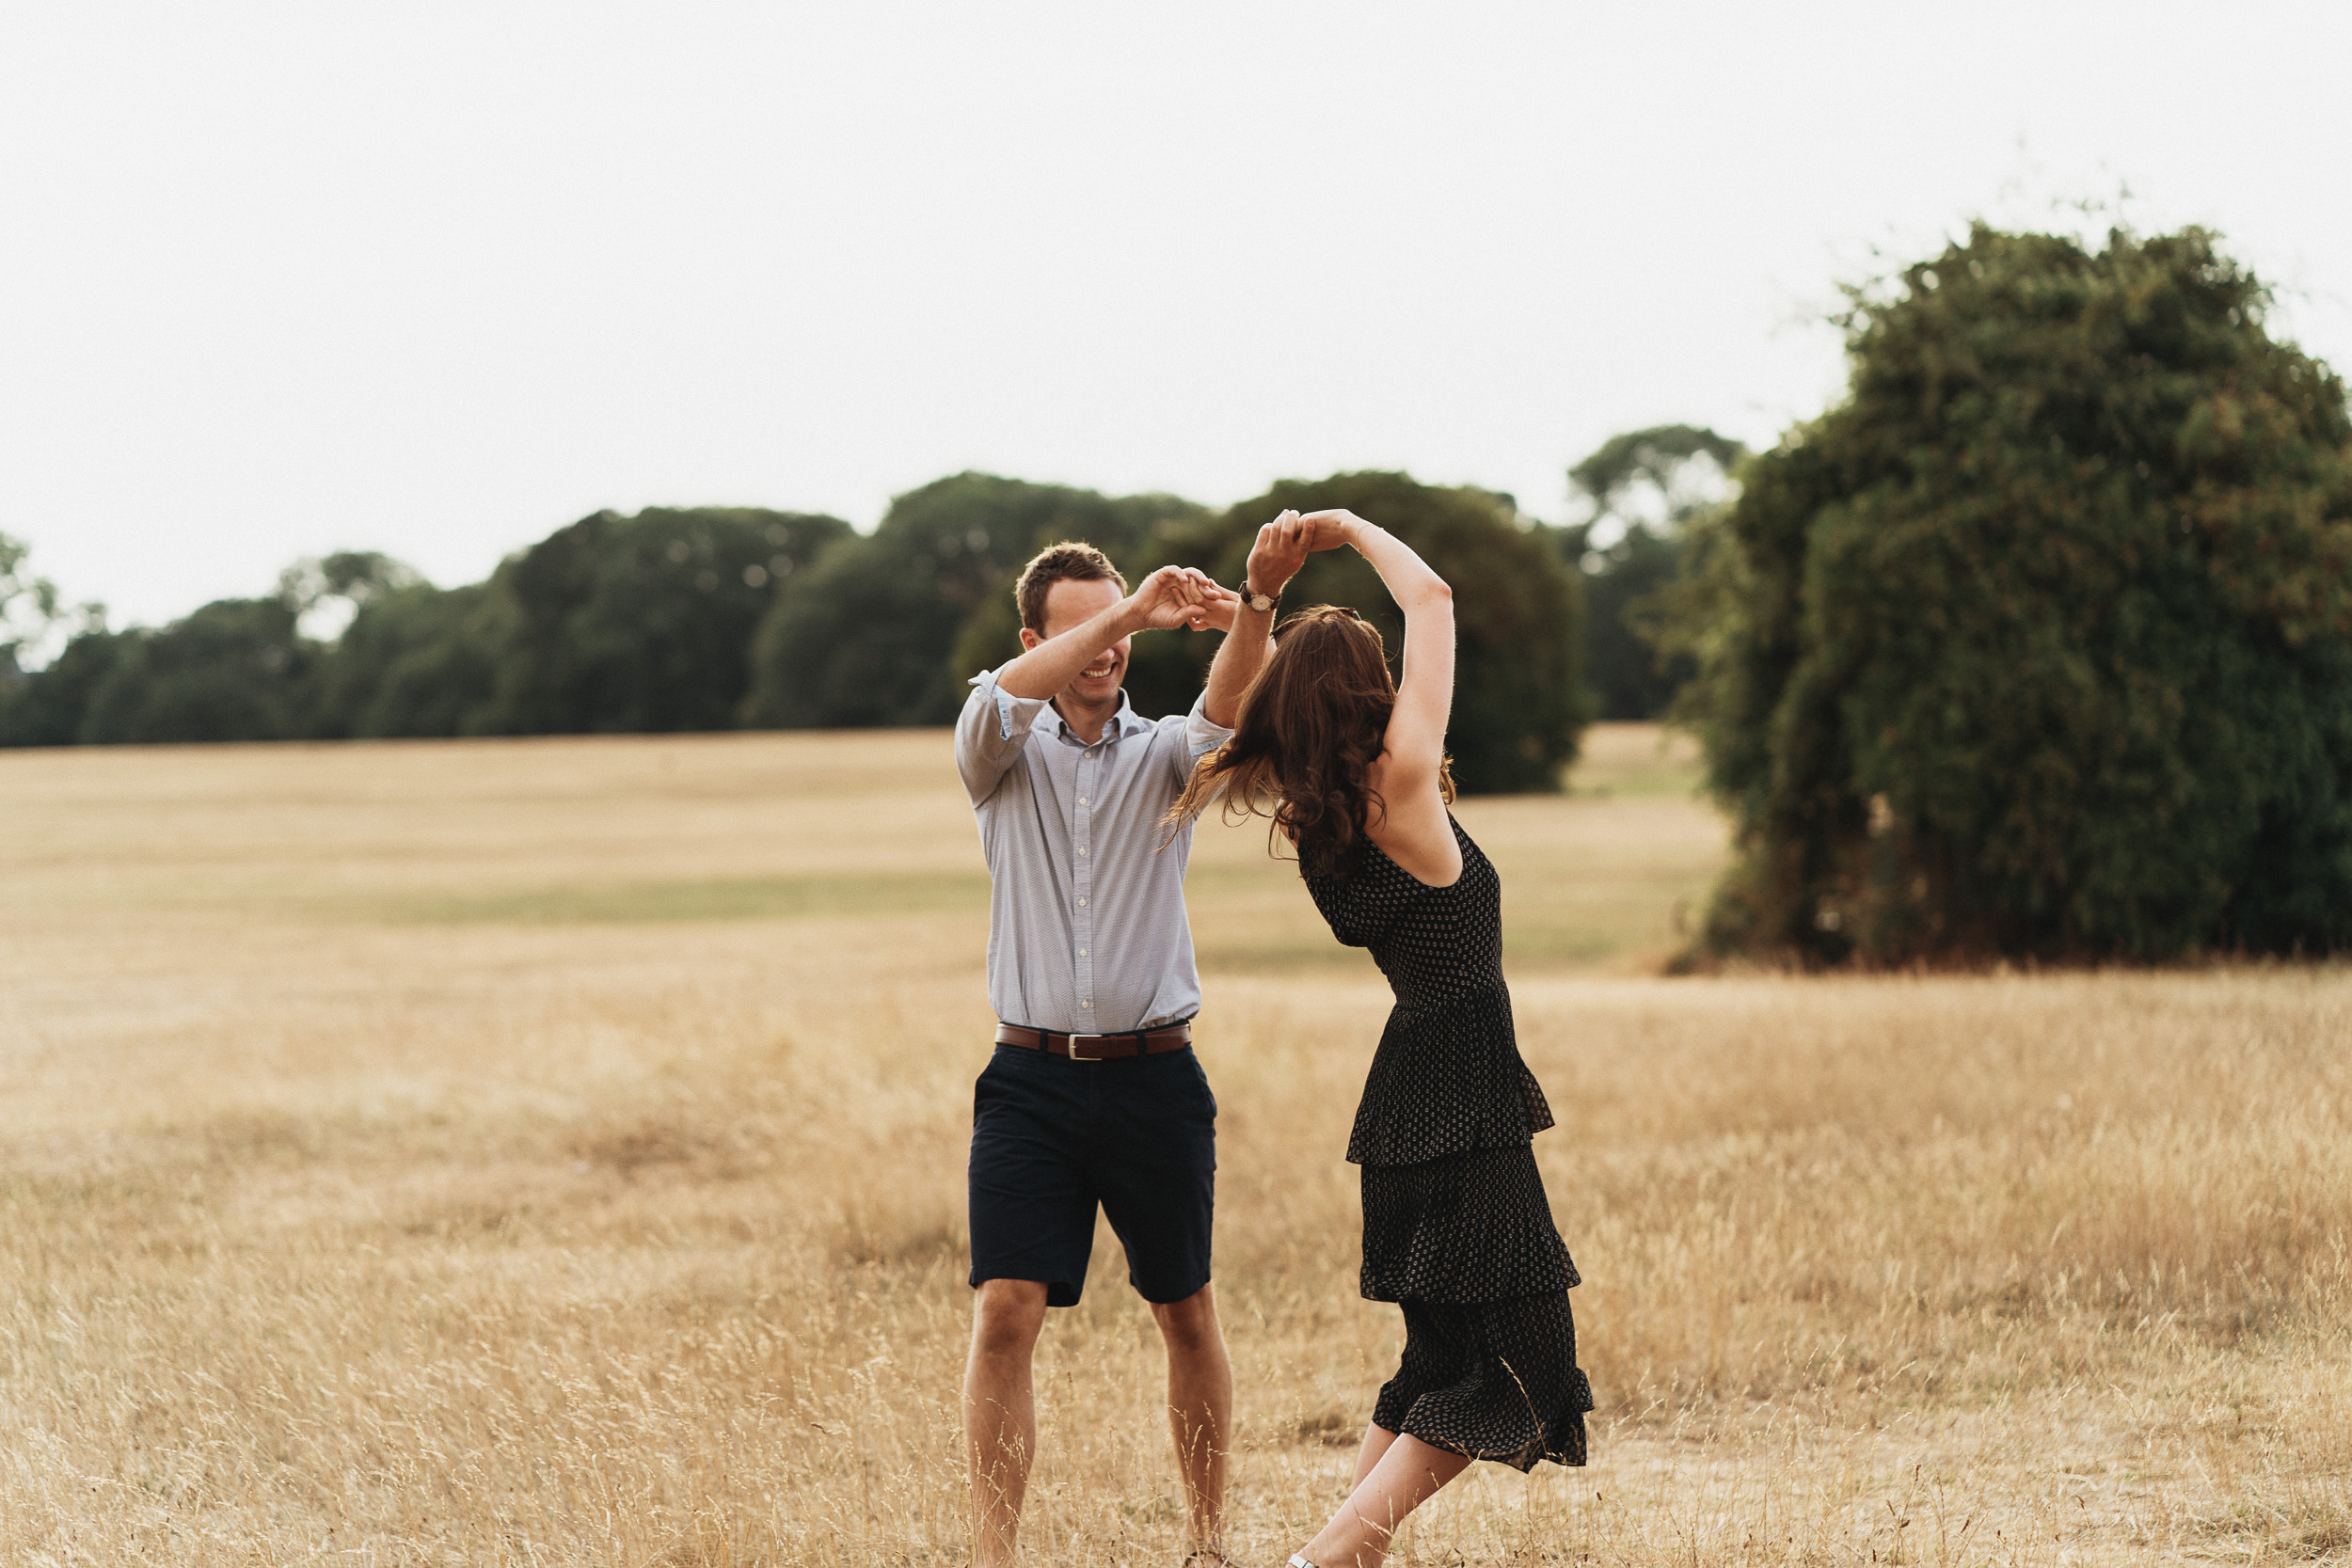 Engagement Shoot on Clifton Downs - The couple dancing on a summer evening